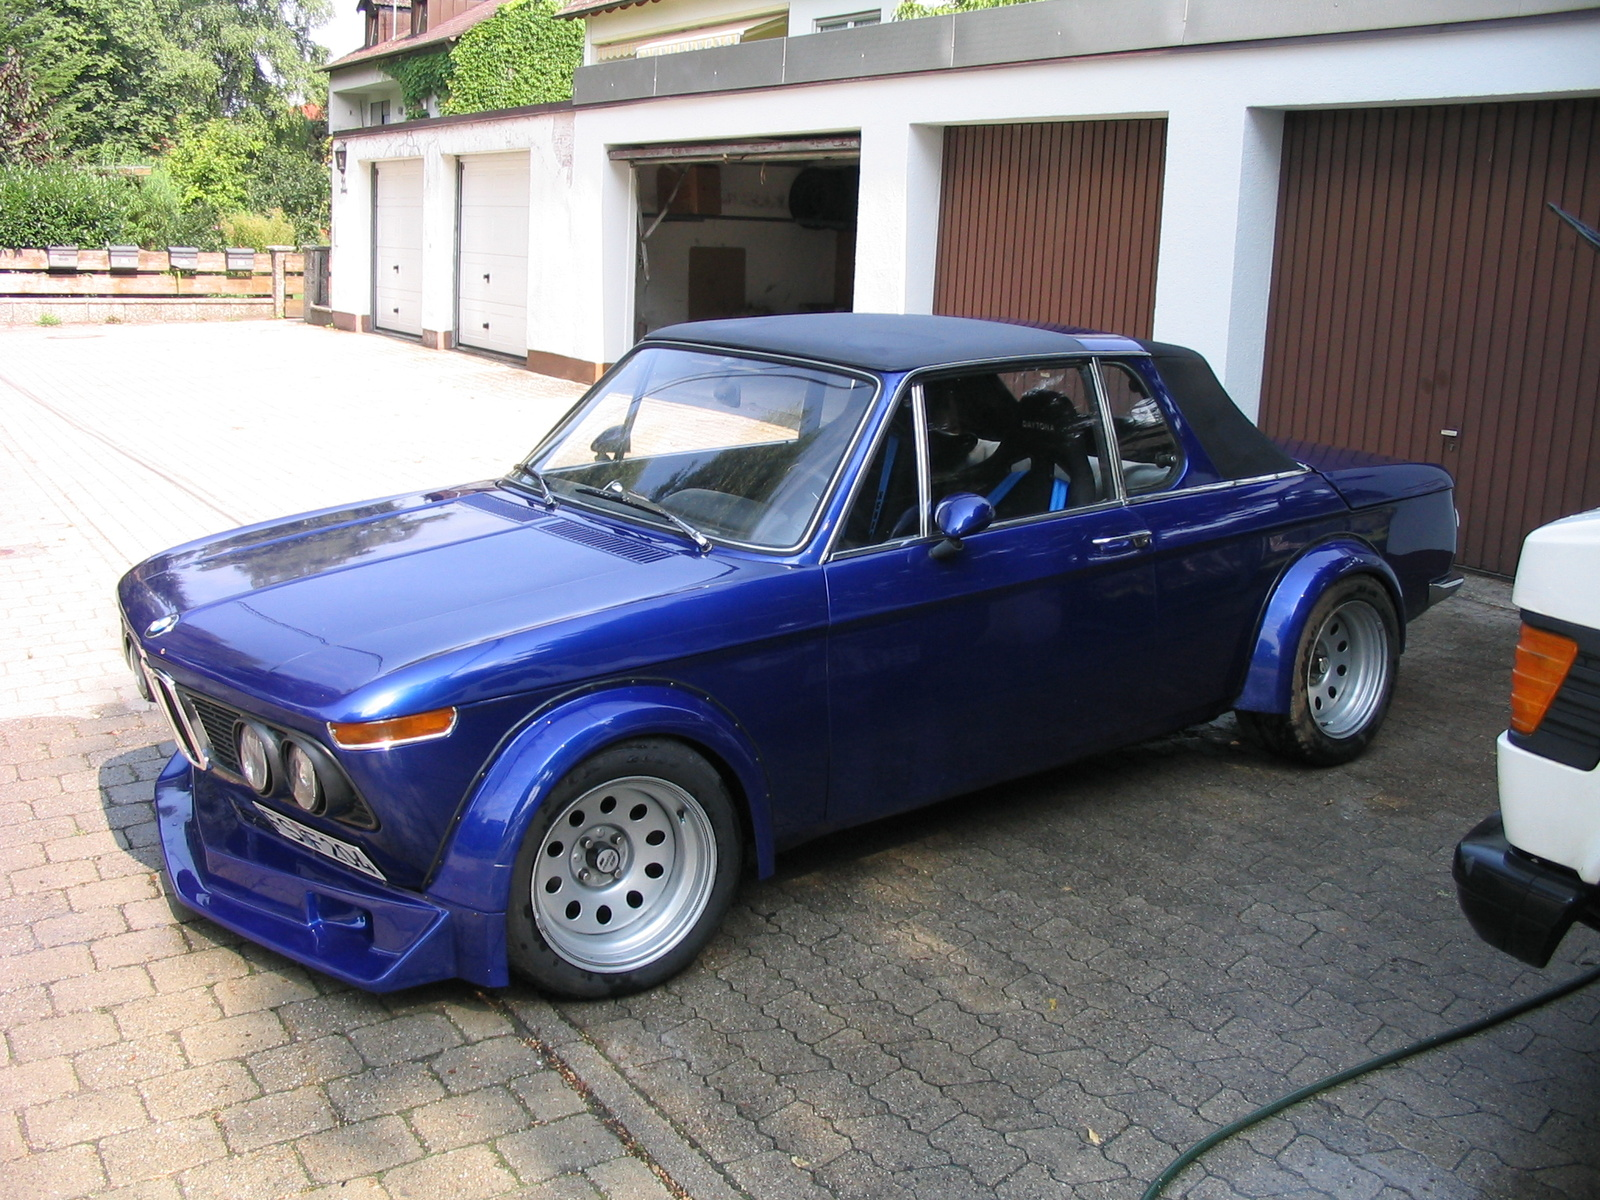 BMW Review Amazing Pictures And Images Look At The Car - 1971 bmw 2002